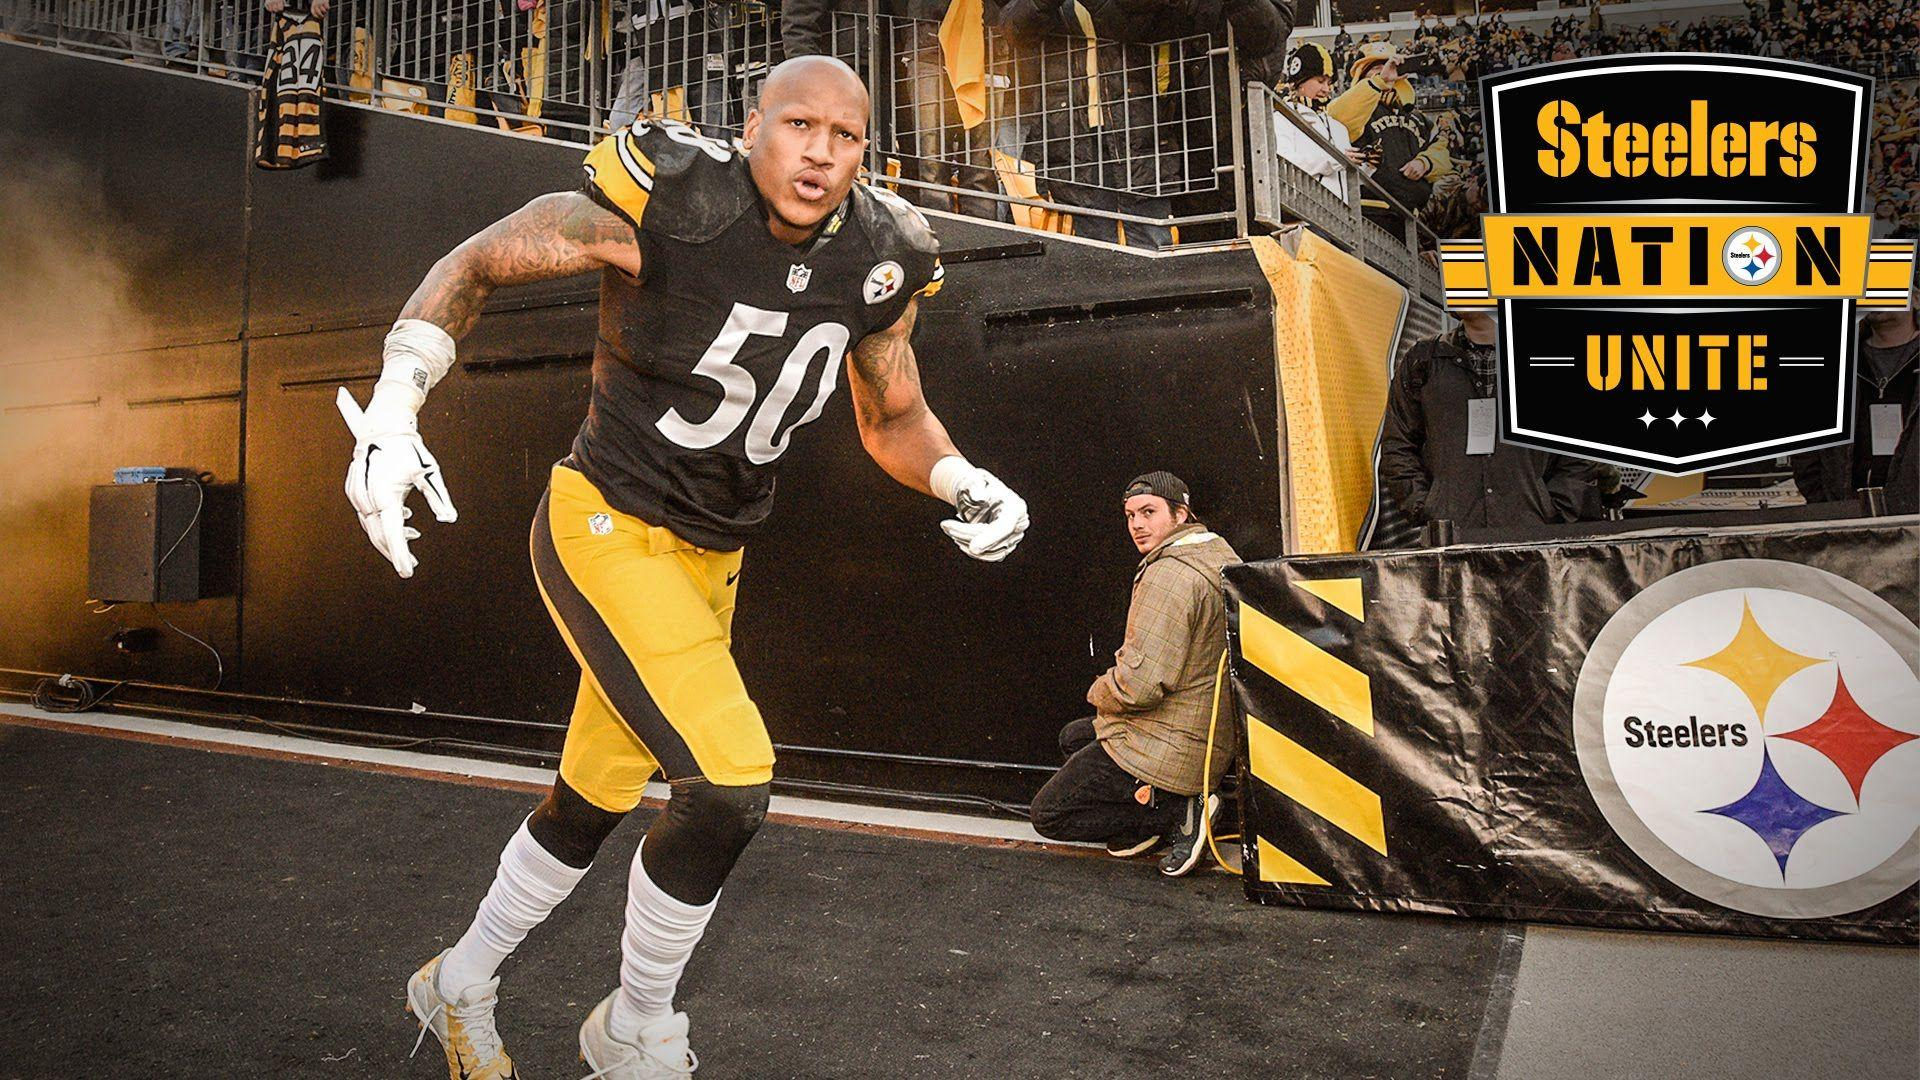 Steelers Nation Unite Weekly Huddle with LB Ryan Shazier - YouTube